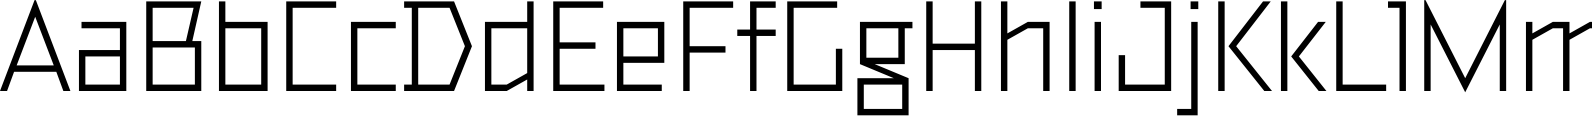 TT Bricks Regular Font